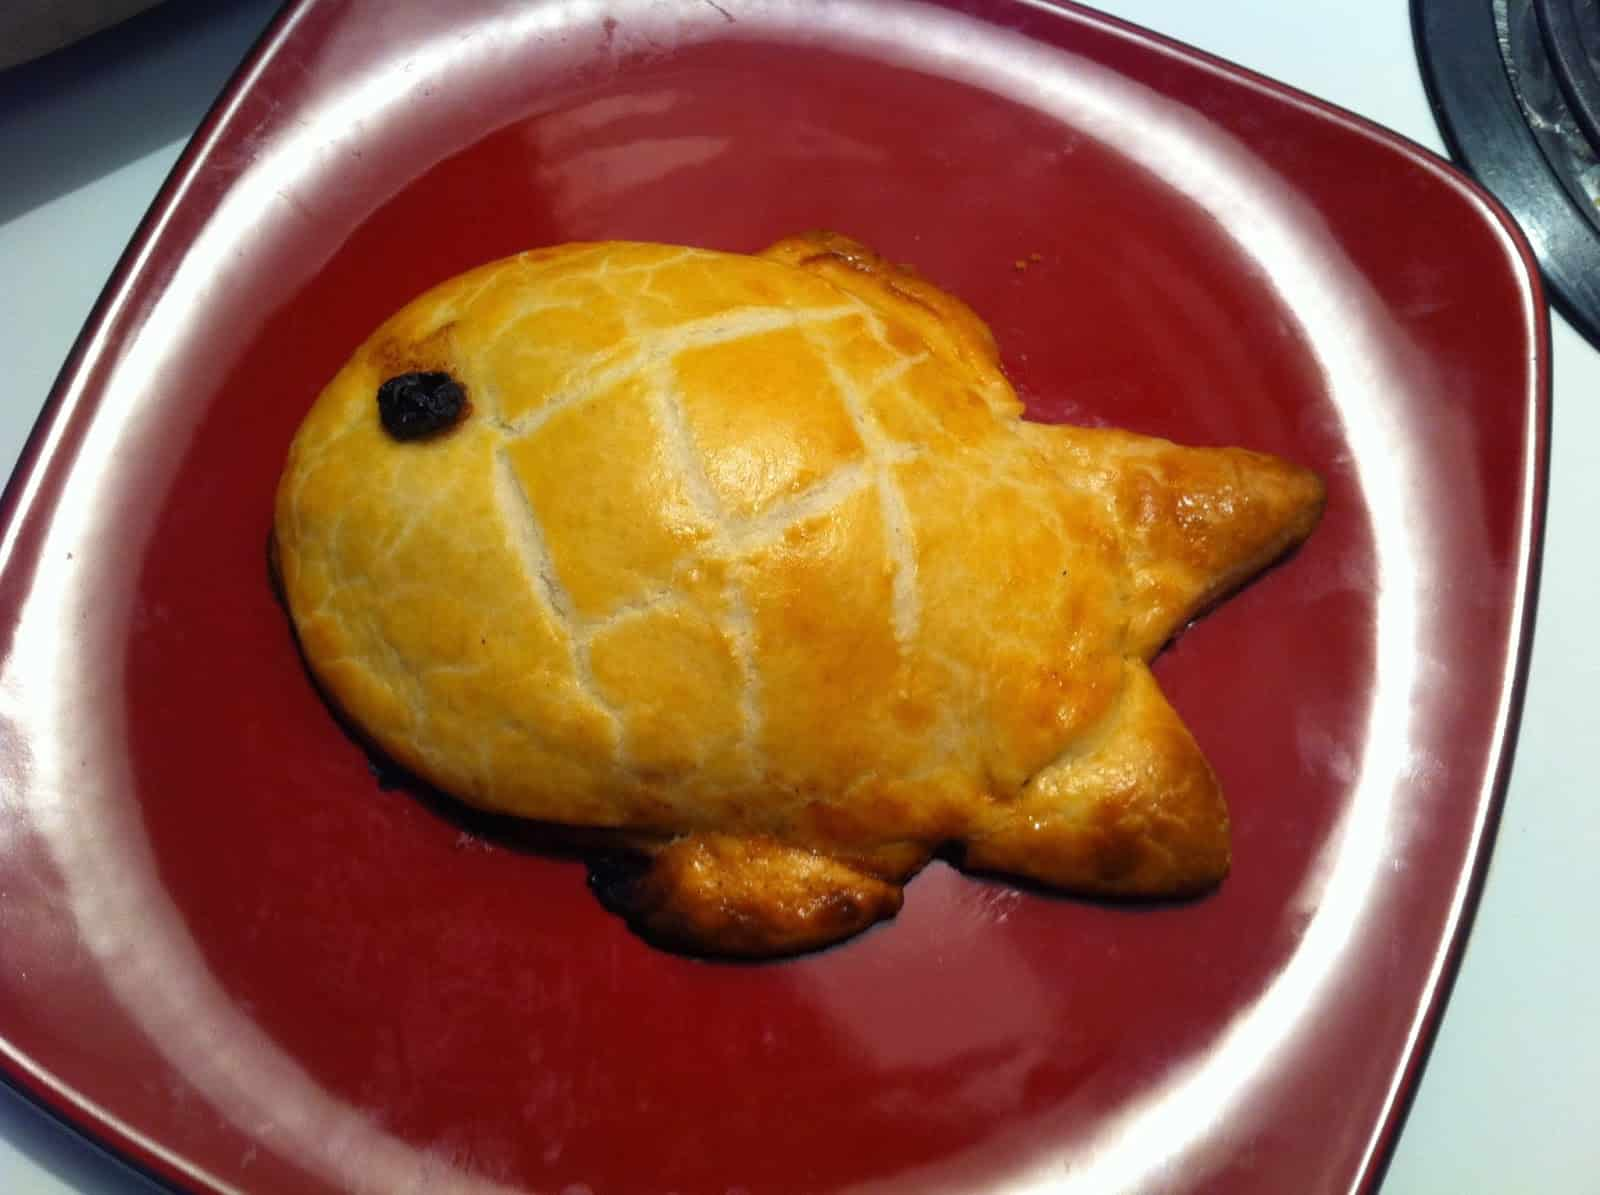 pastry fish recipe from final fantasy xiv